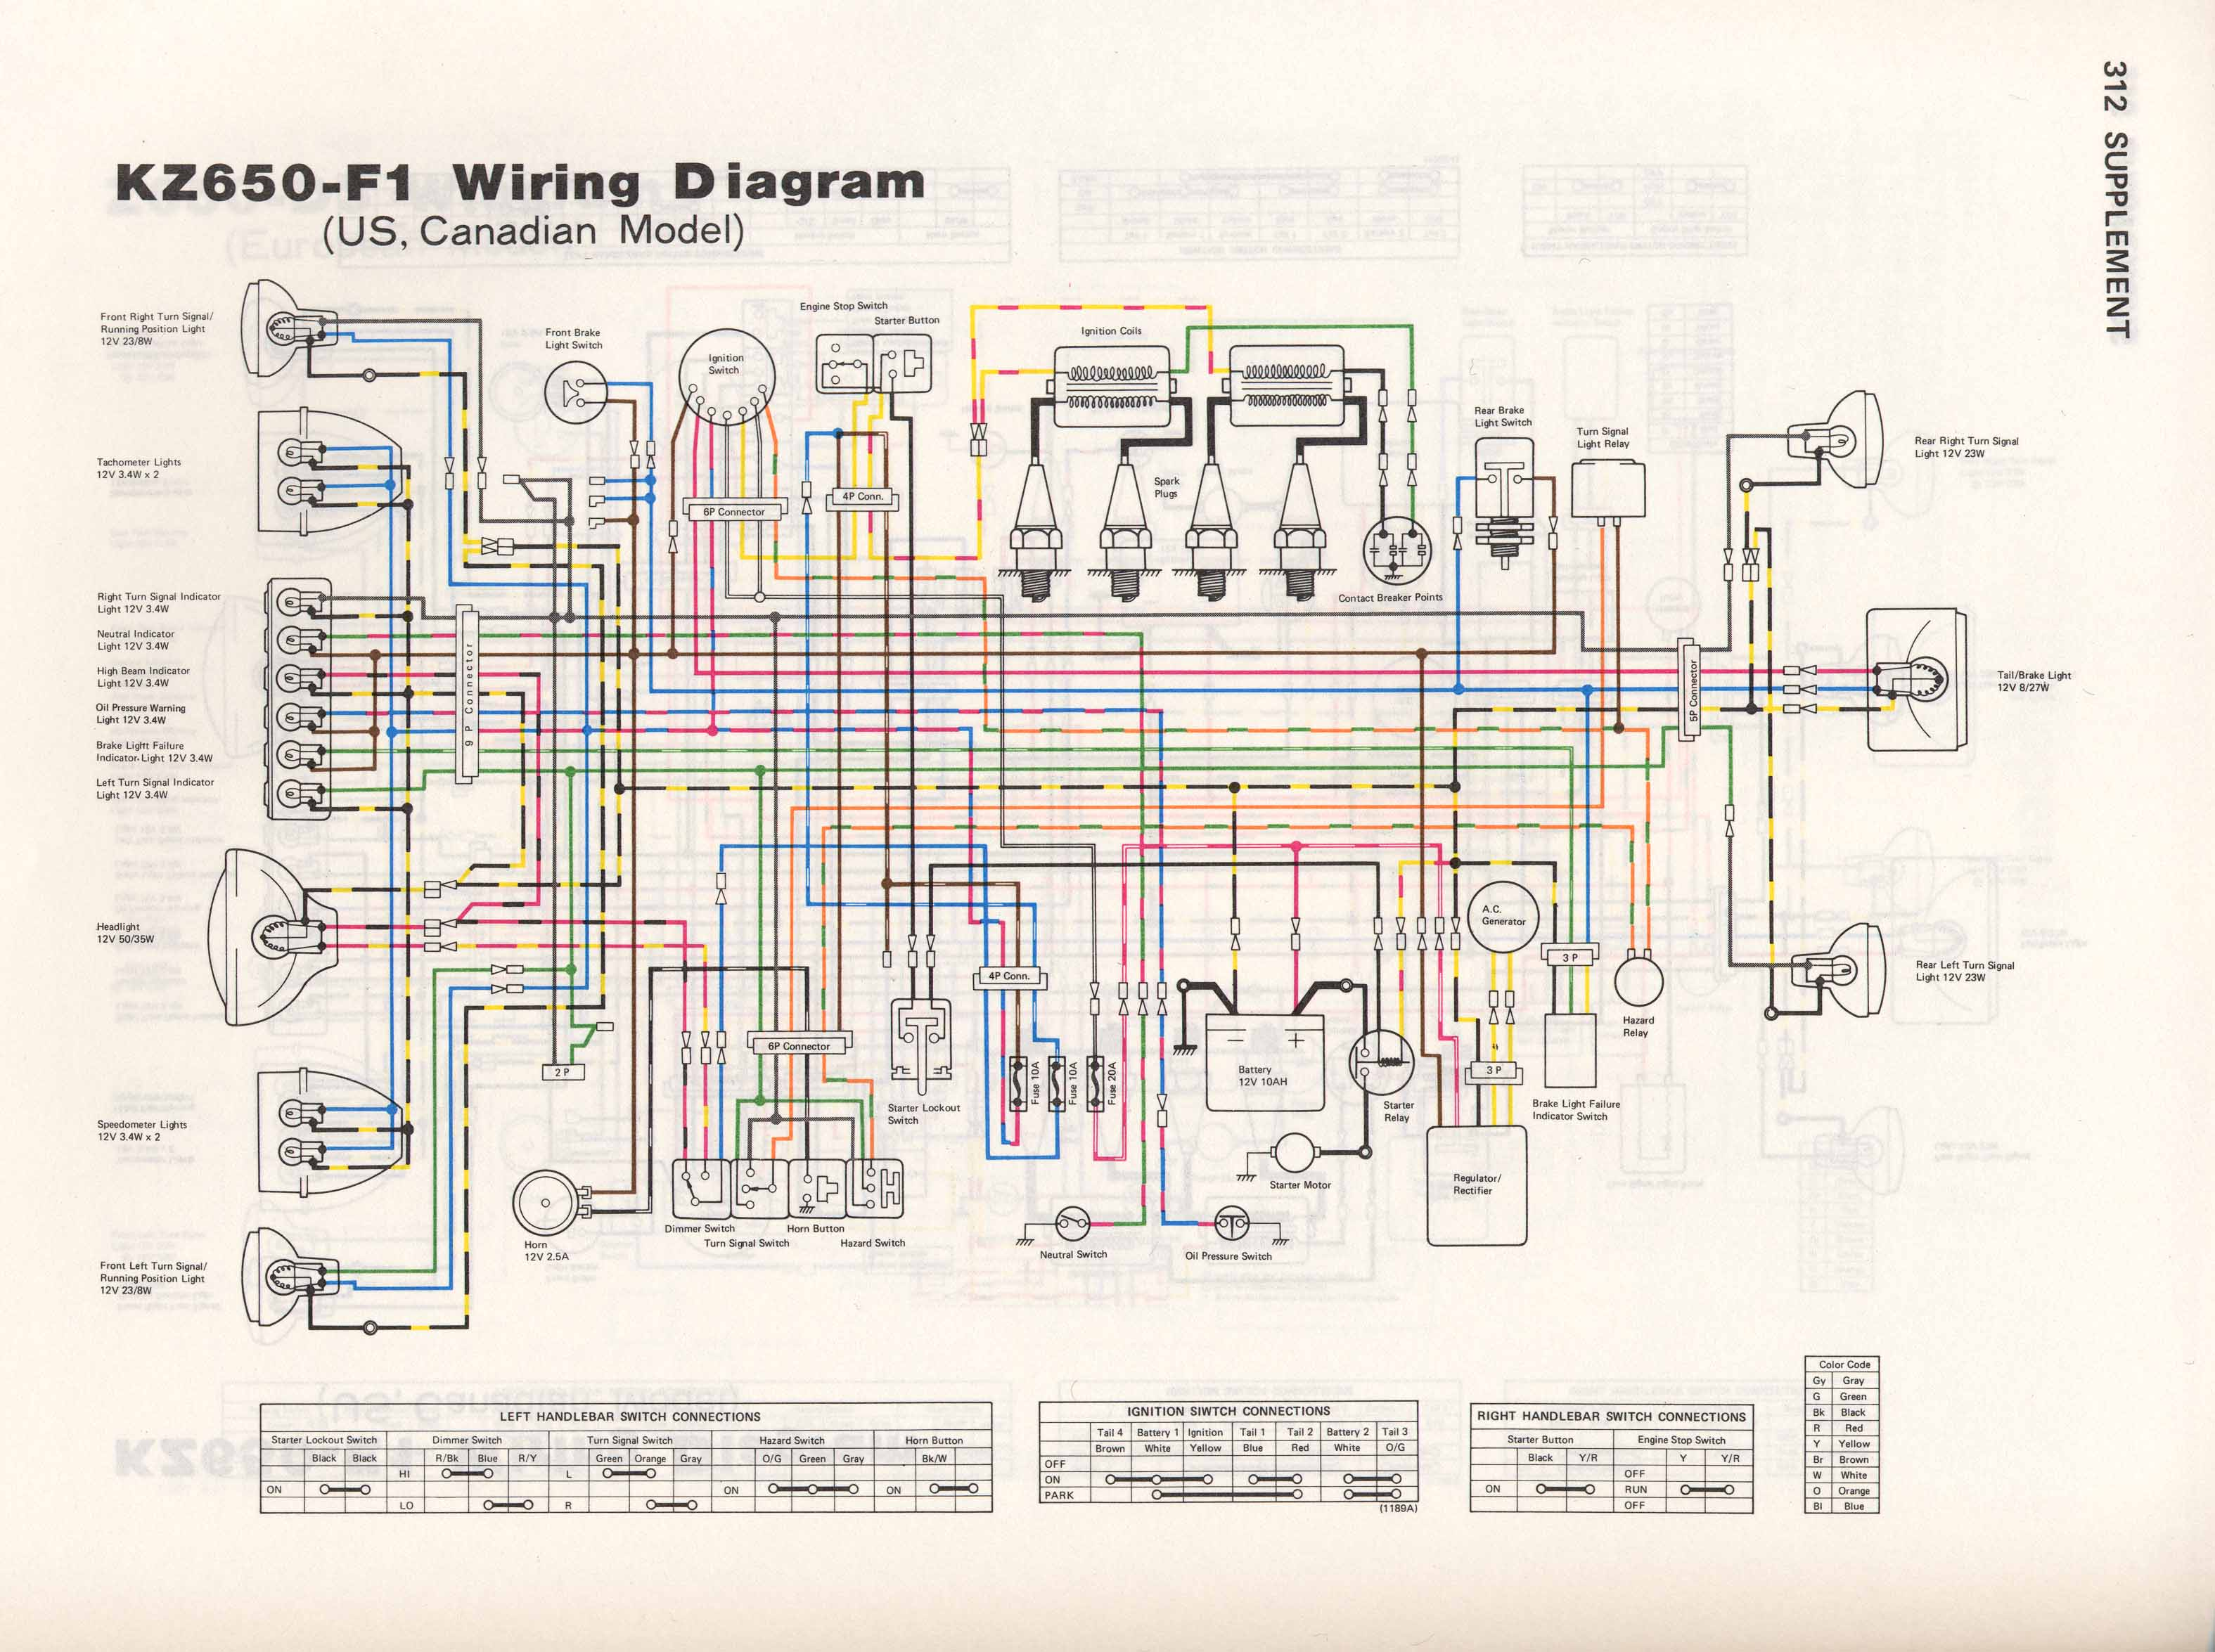 KZ650 F1 kz650 info wiring diagrams 77 Corvette Wiring Diagram at bakdesigns.co